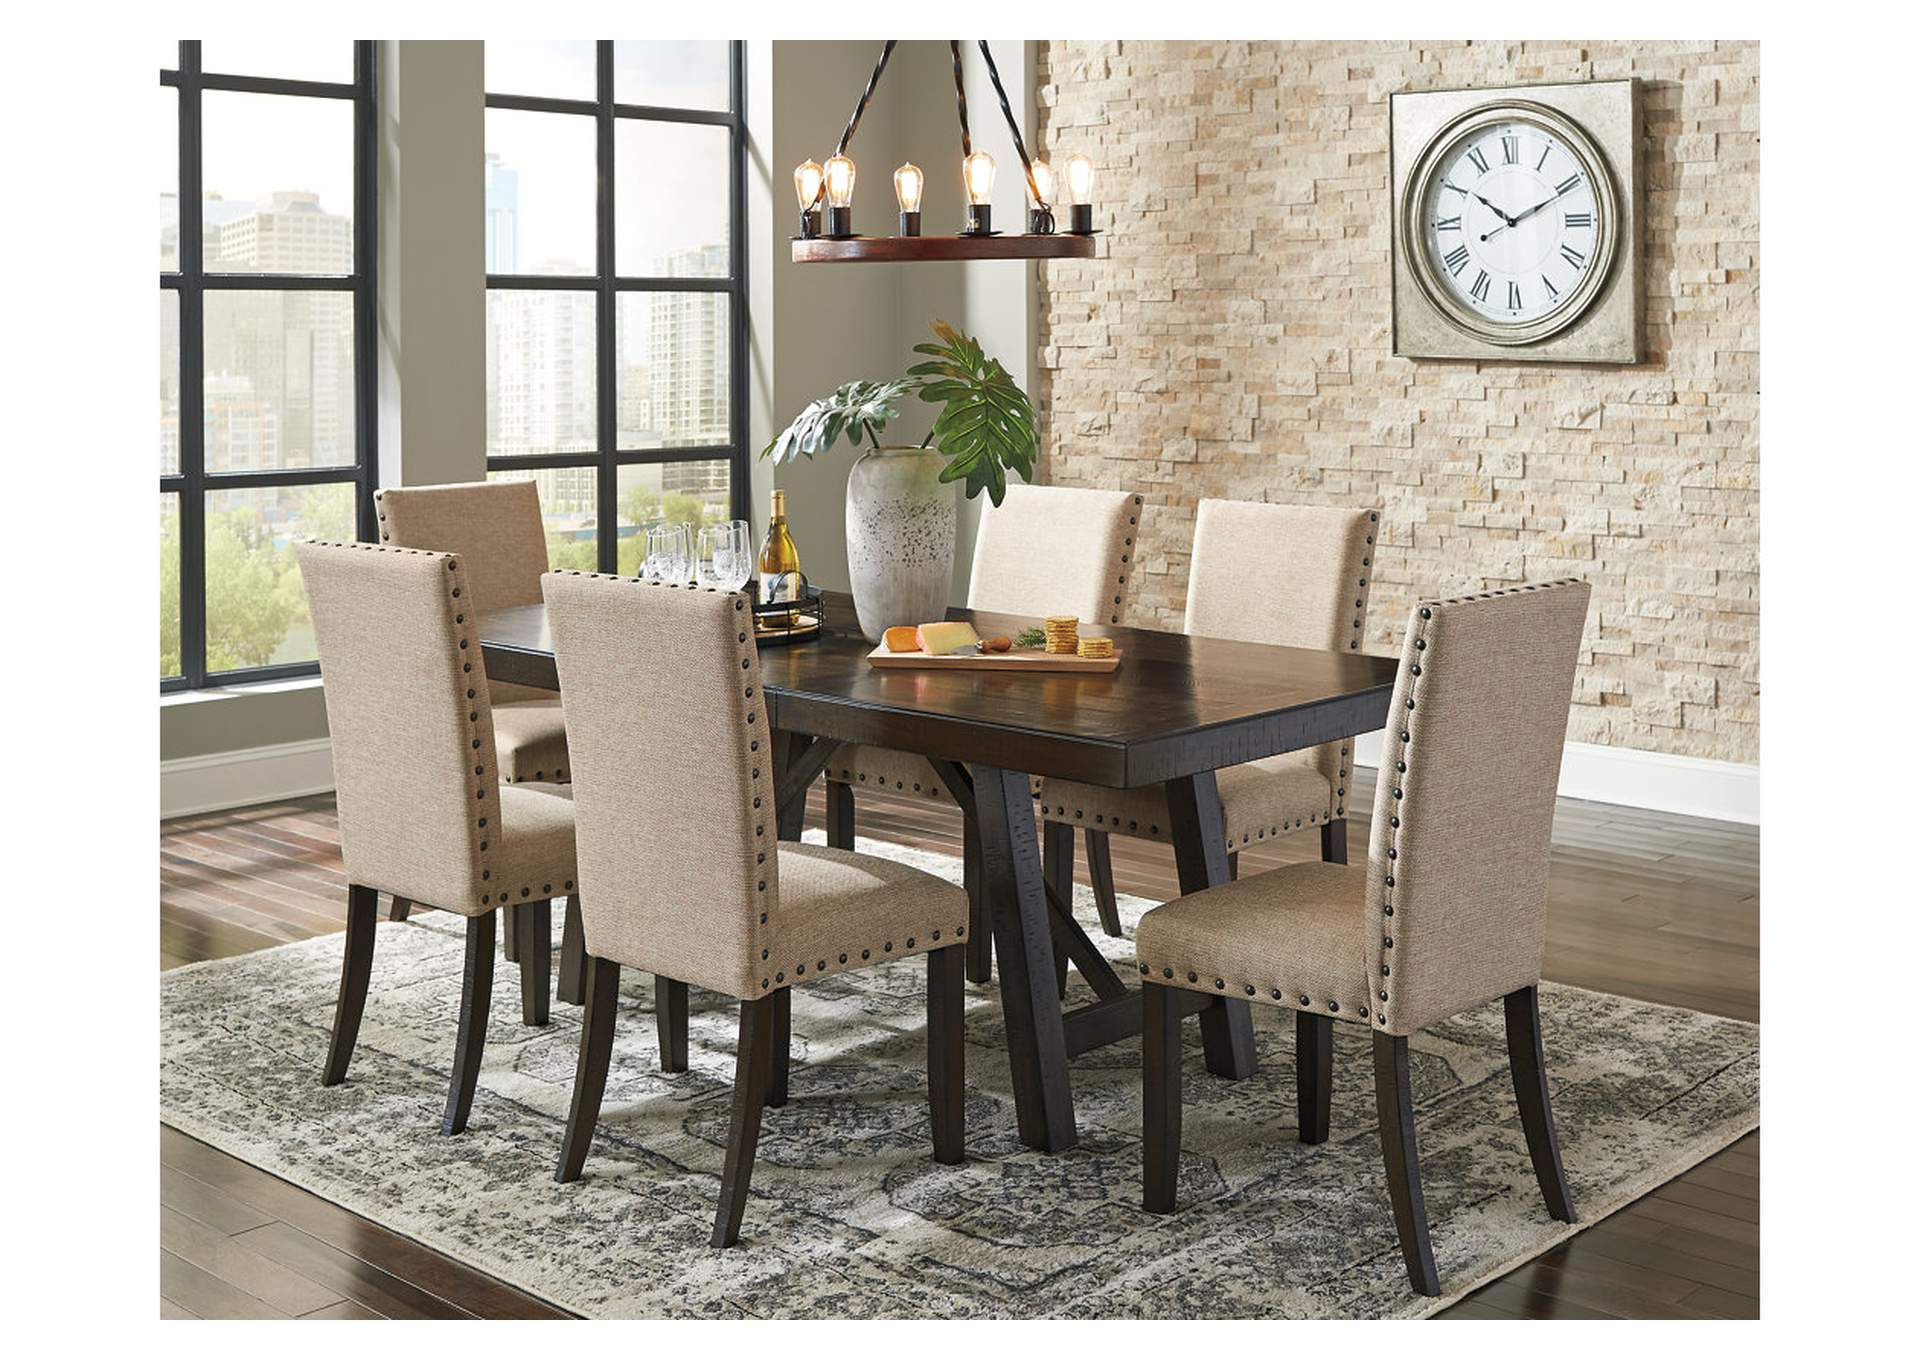 Dining Furniture Center Resources Now @house2homegoods.net